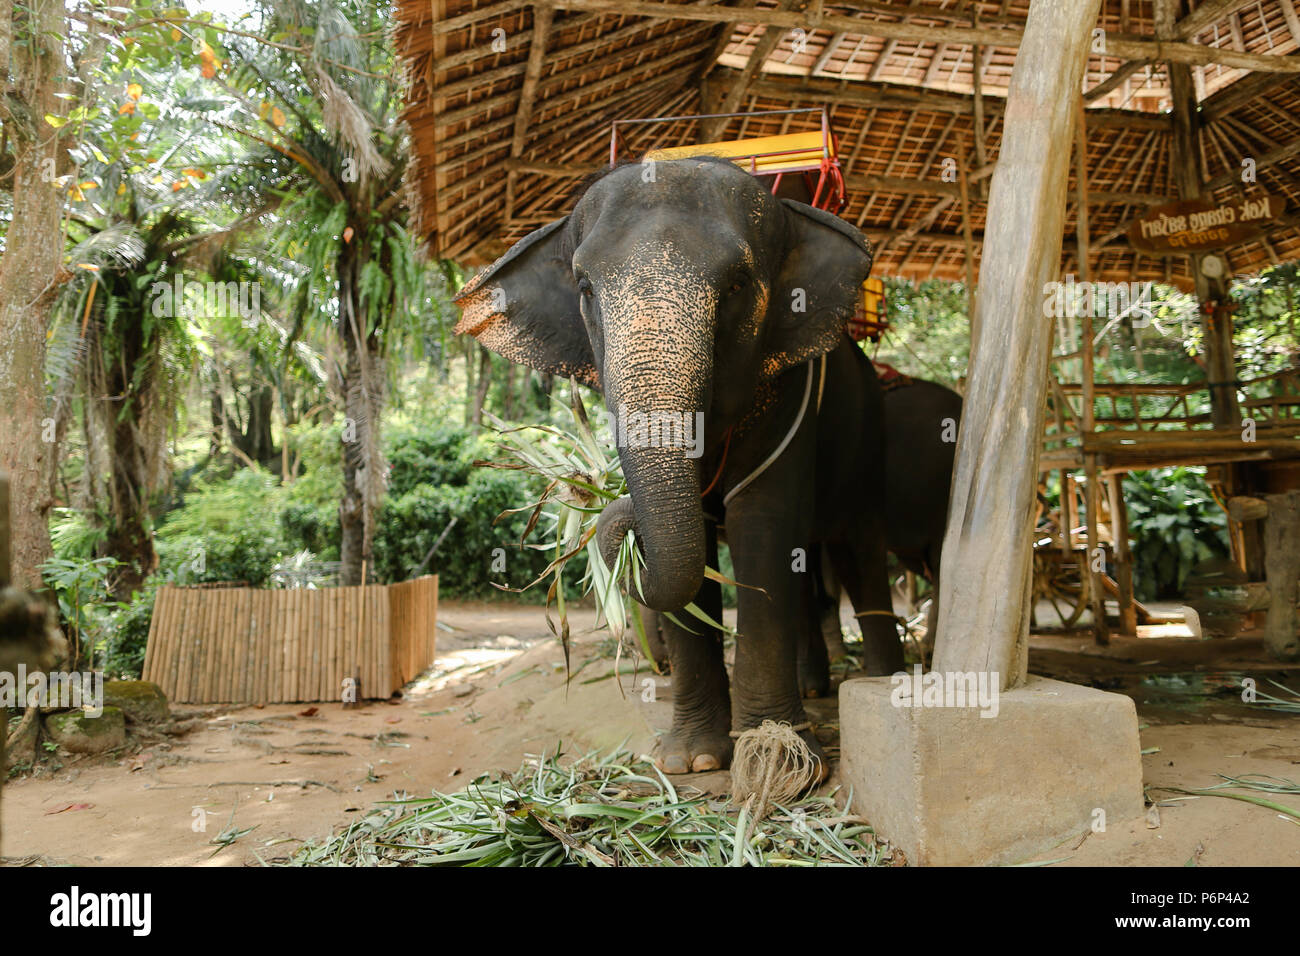 Tamed elephant standing with yellow saddle. - Stock Image